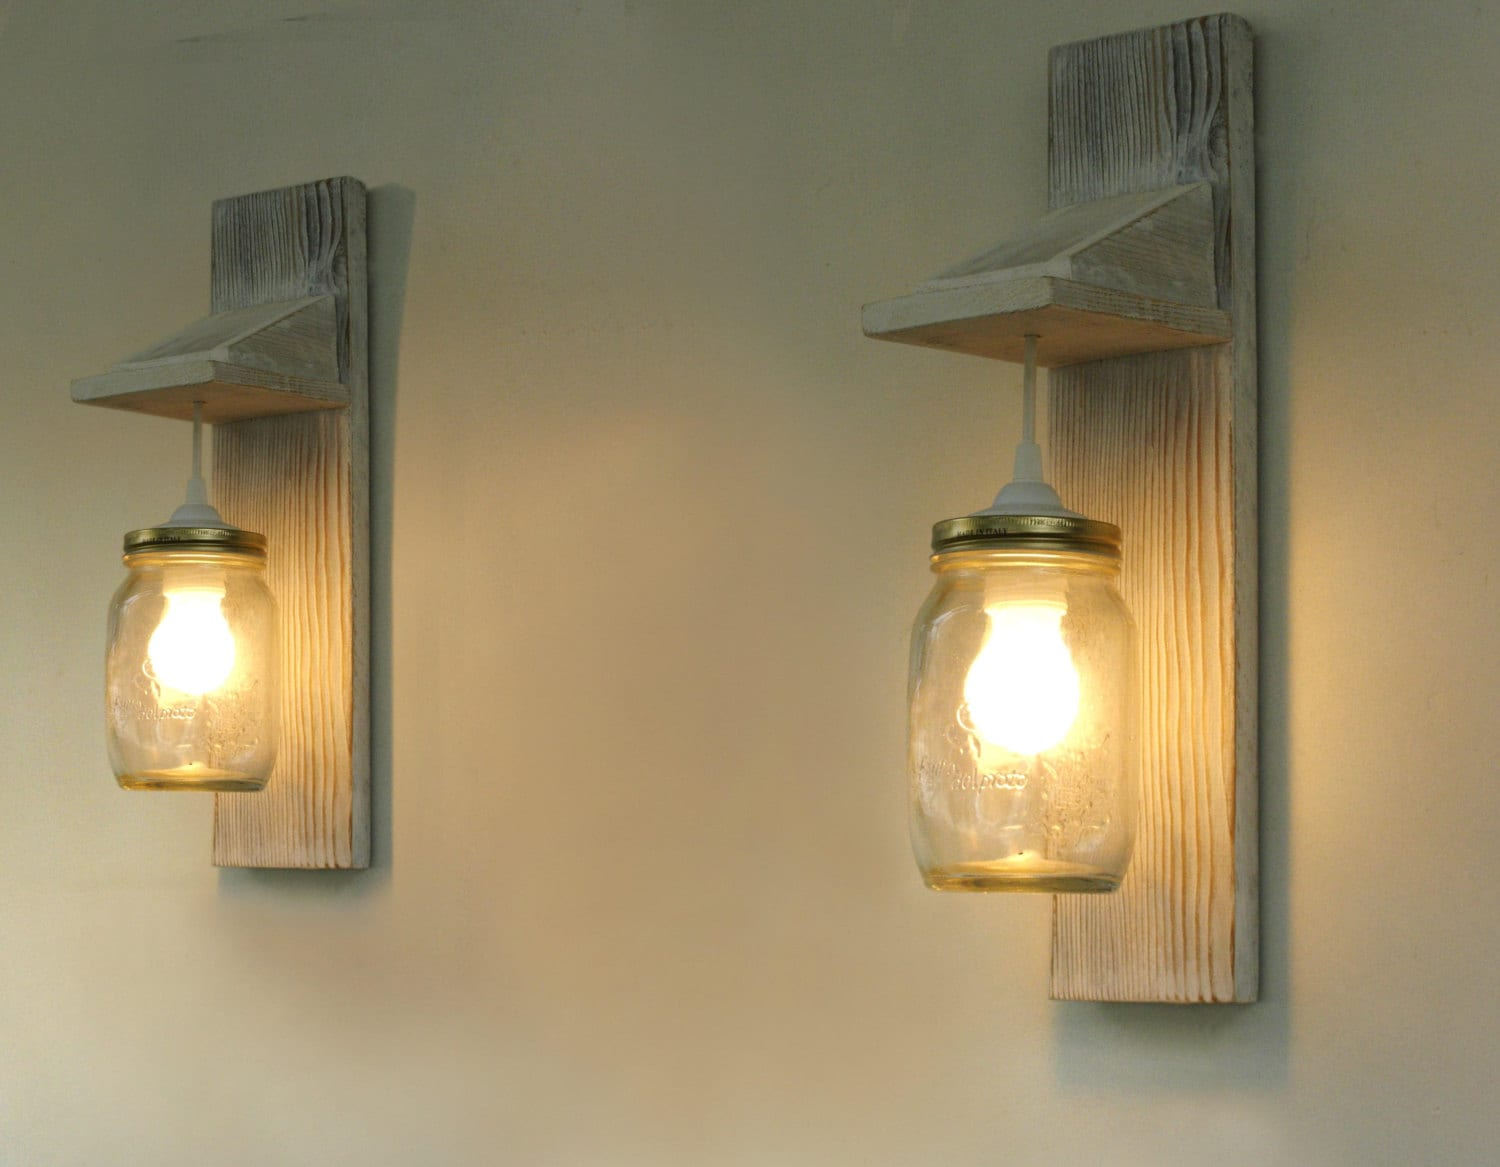 Pair of wall lamp reclaimed wood wall sconce mason jar zoom arubaitofo Gallery